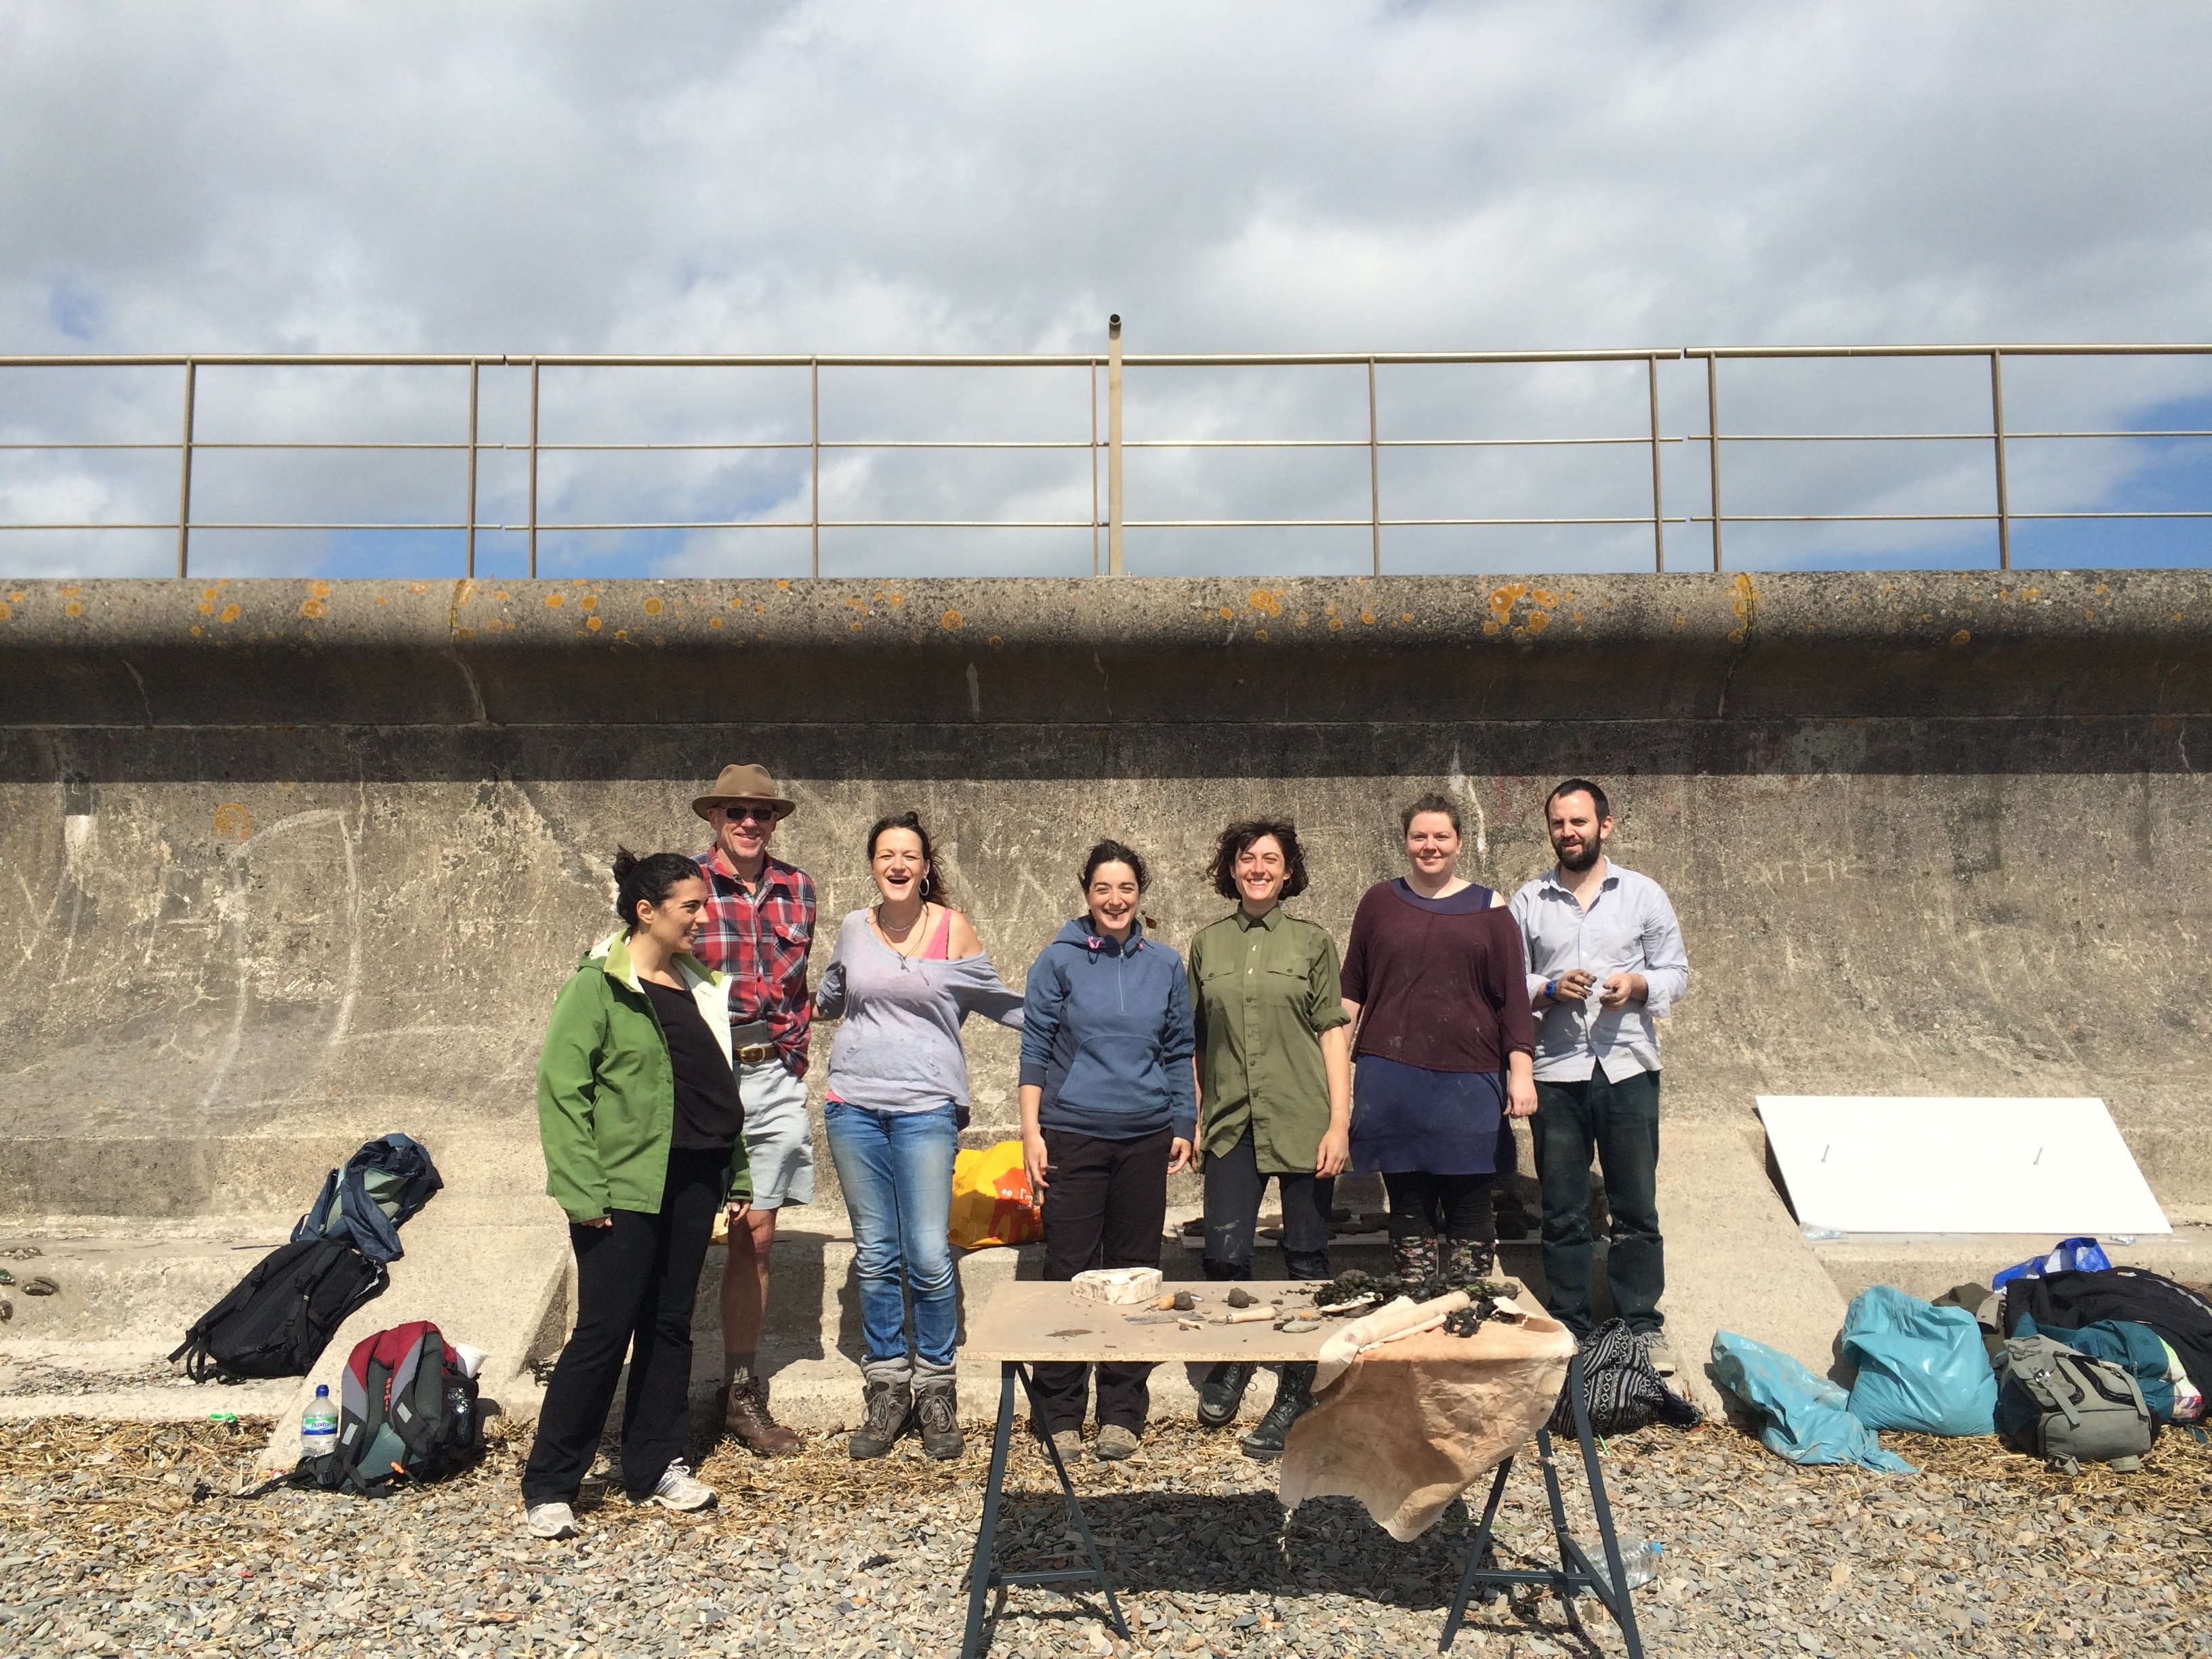 Participants at the 'Into the Mud' workshop, Severn Beach (2016). Photo by Marianna Dudley